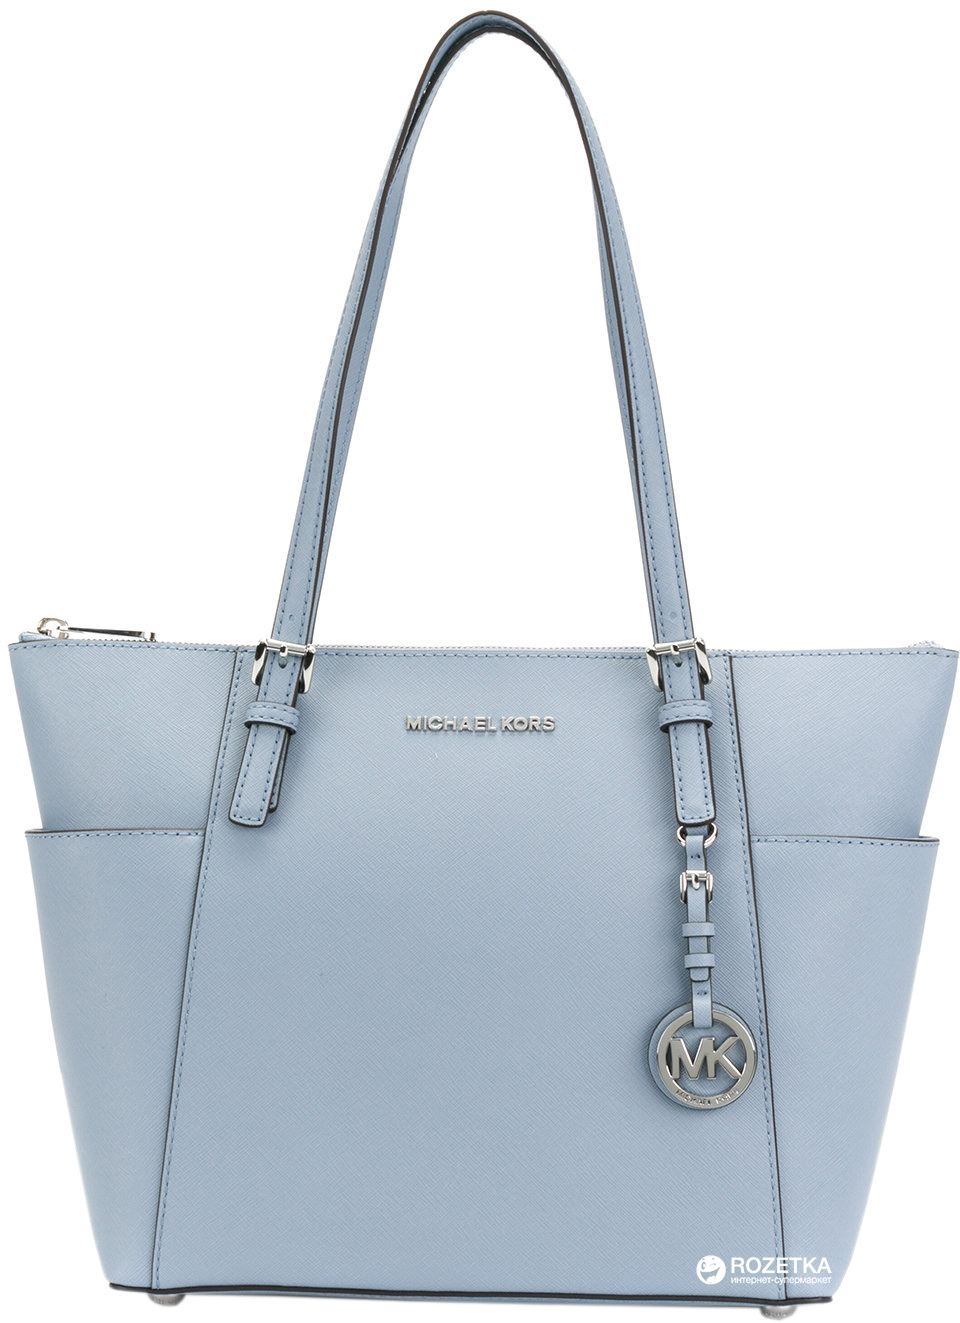 Женская сумка кожаная Michael Kors Jet Set Item 30F2STTT8L487 ca441bb1018